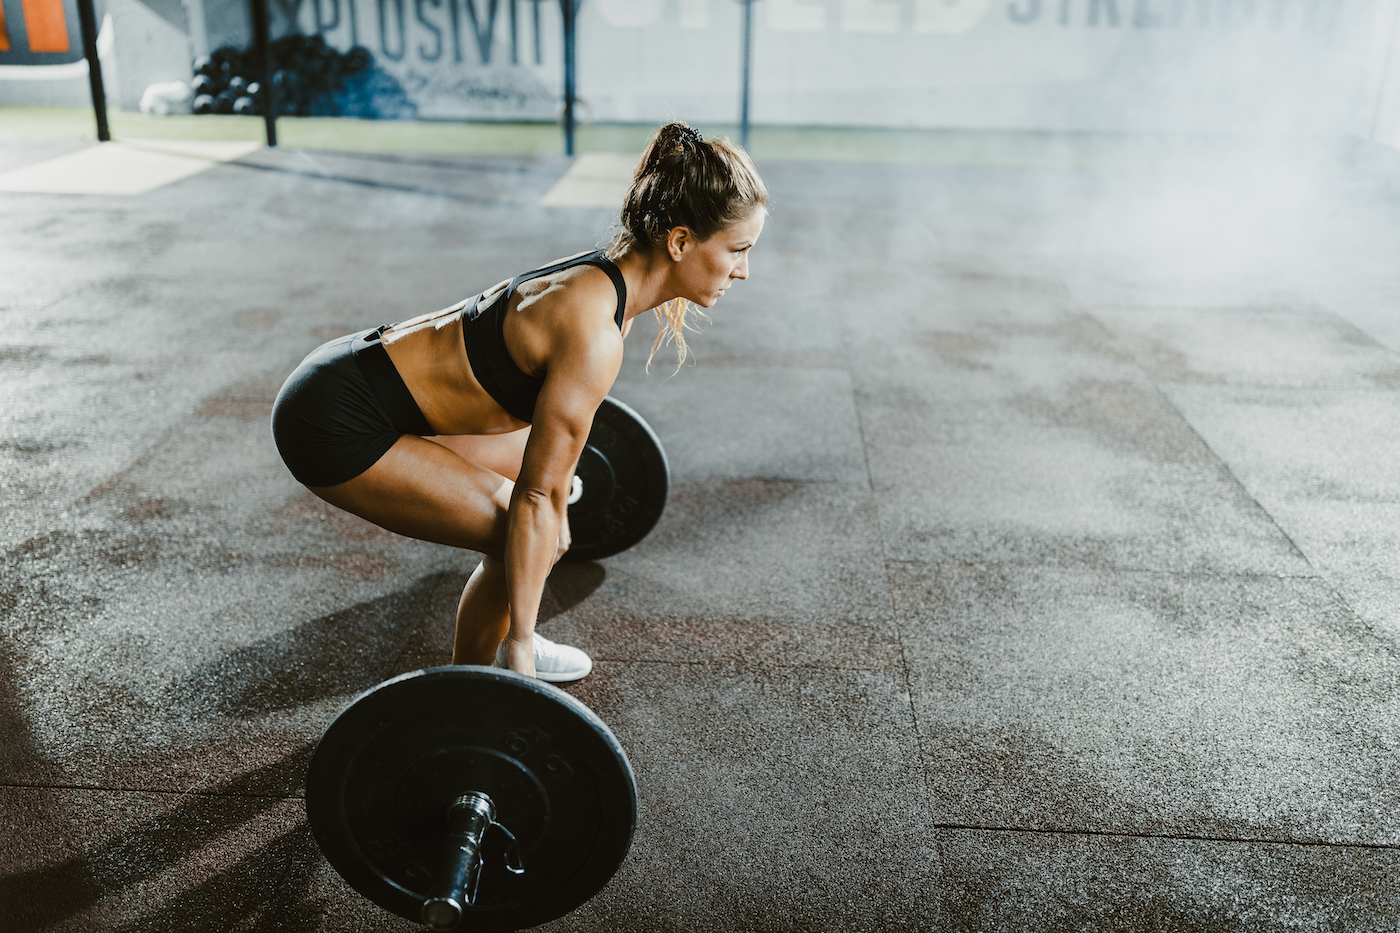 Thumbnail for A Crossfit Coach Says 'Mci' Is the Acronym to Remember for Nonstop Progress at the Gym